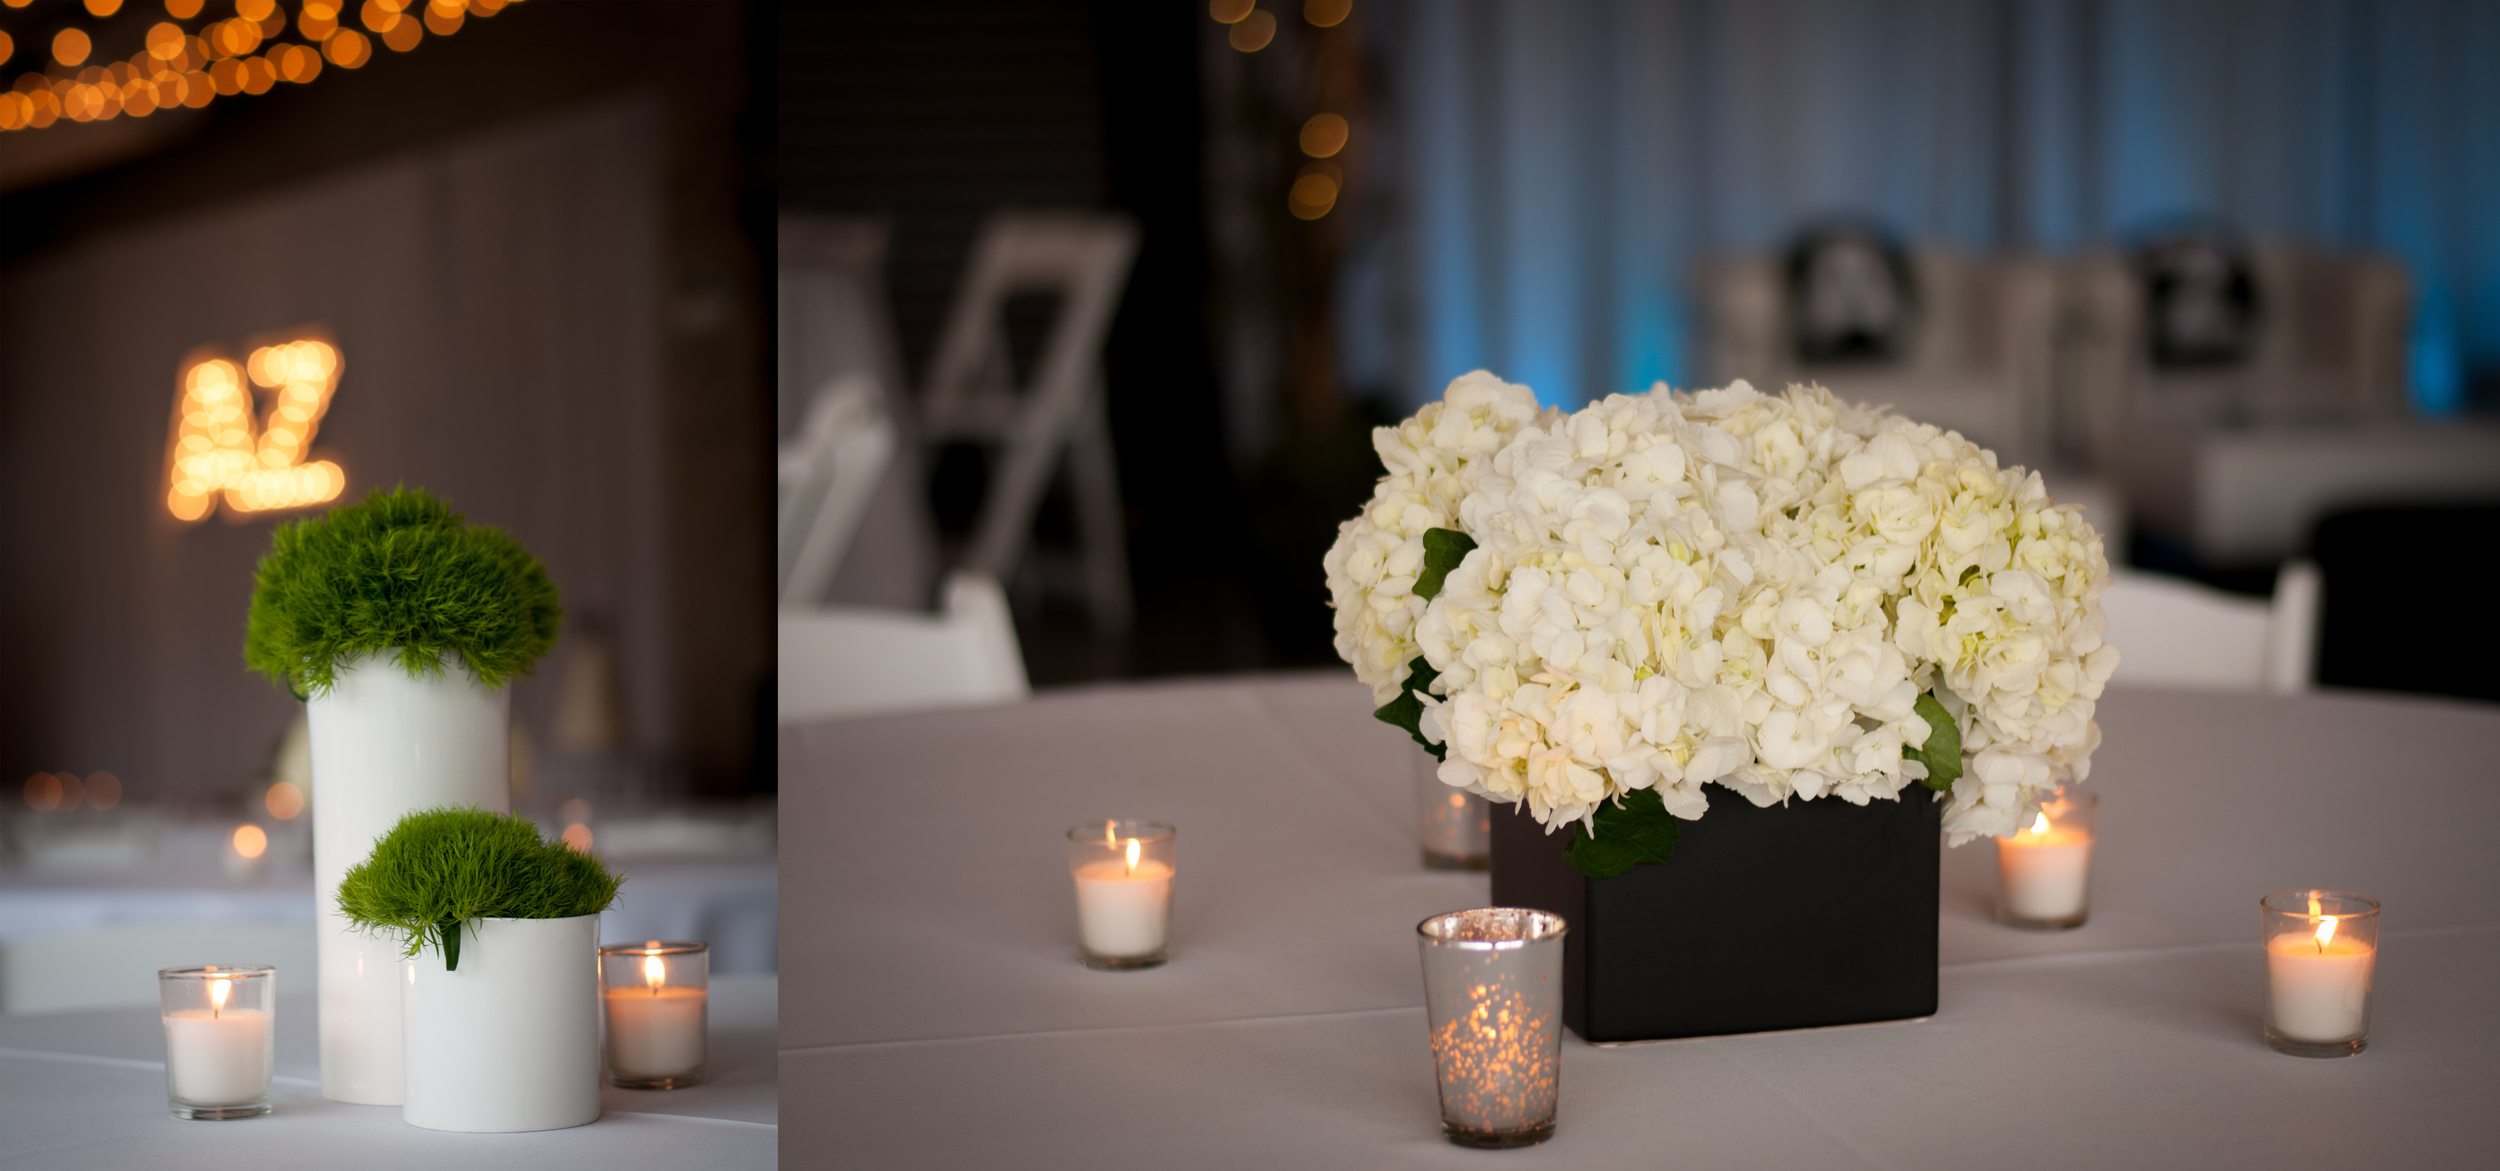 meredith donnelly photography-105.jpg